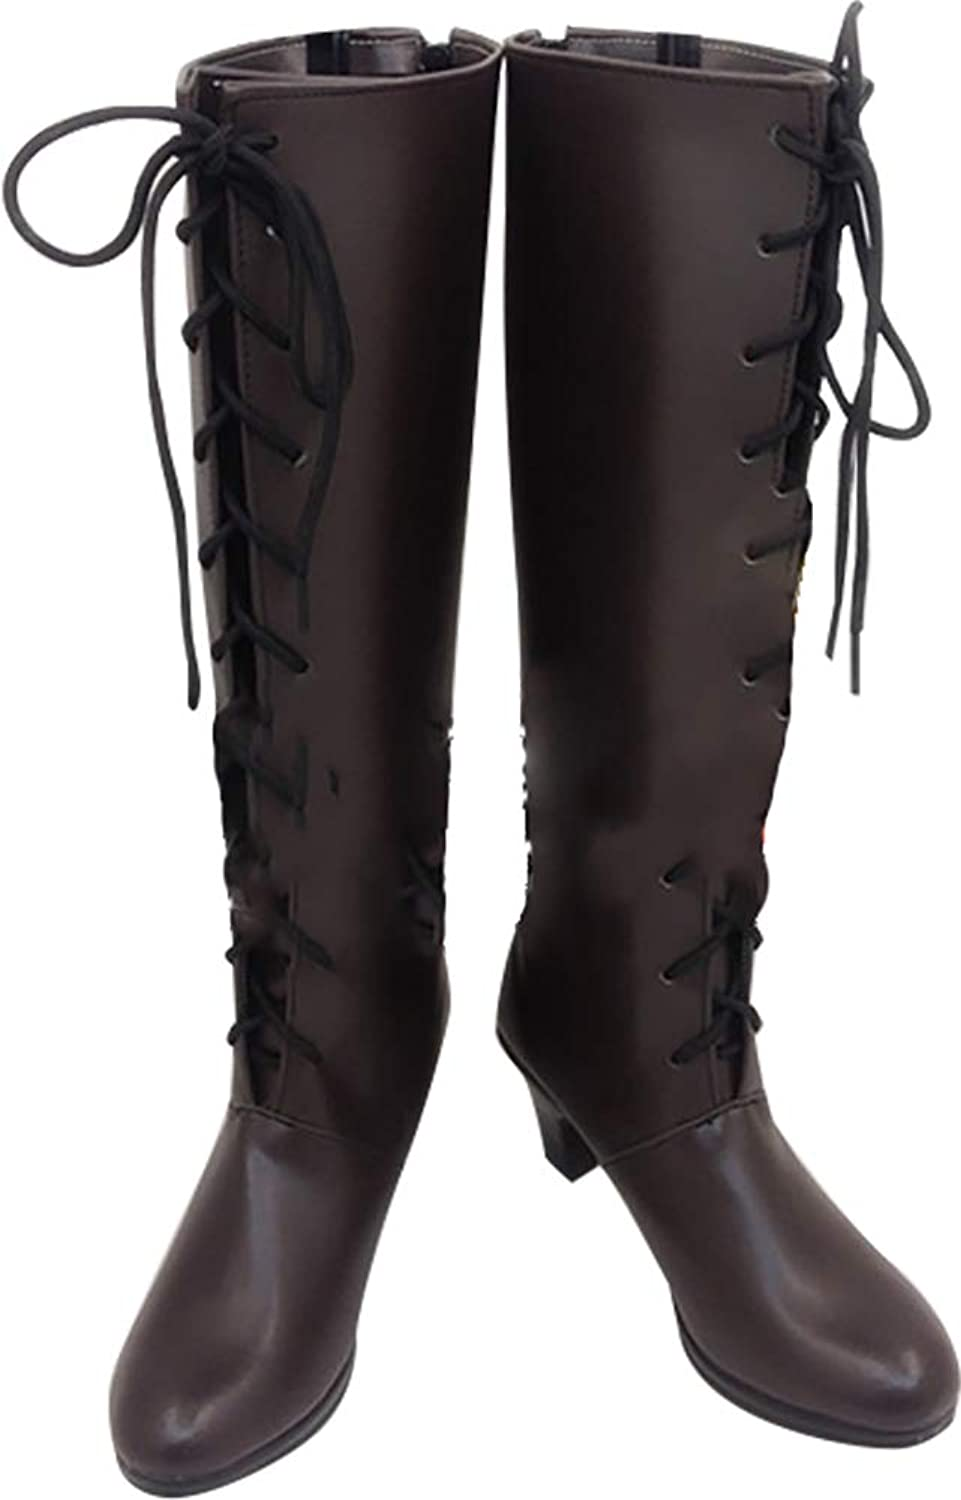 Whirl Cosplay Boots shoes for Black Butler Alois Trancy Dark Brown